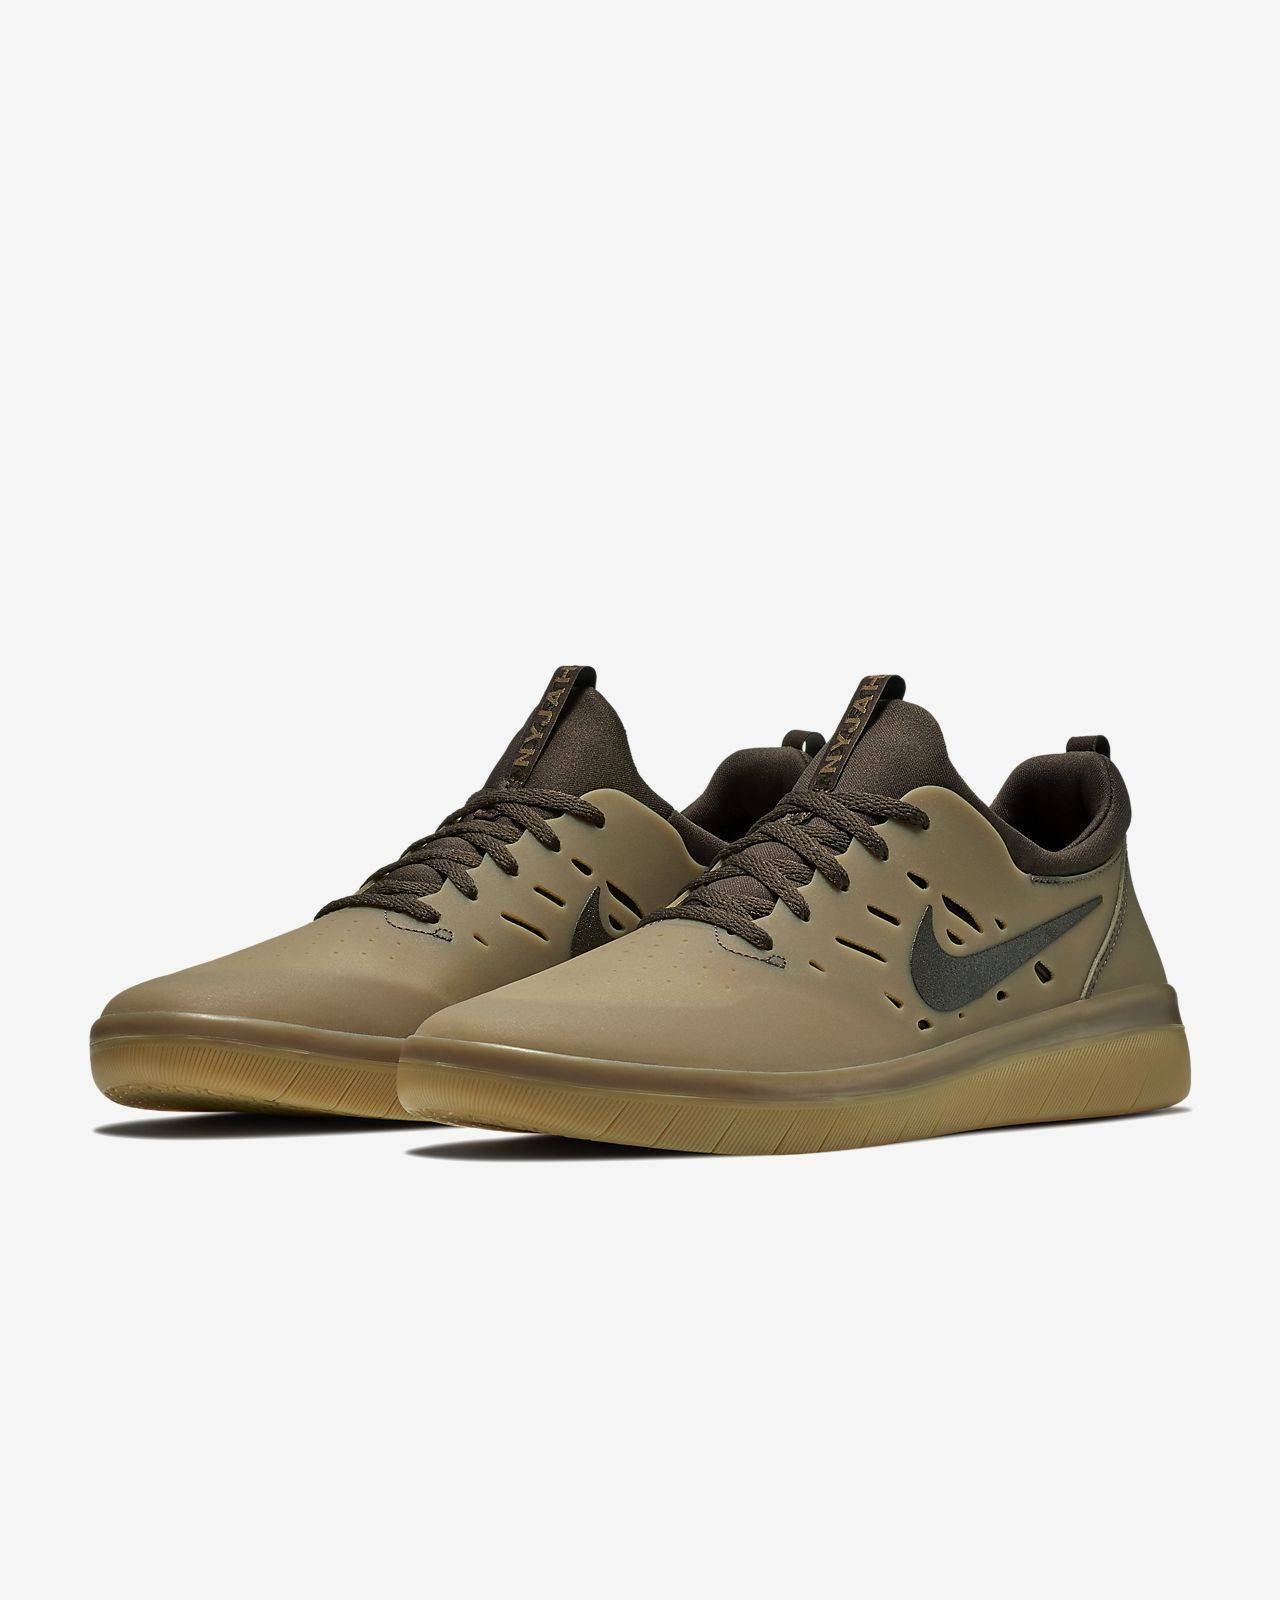 NIKE SB Nyjah Free Skateboard Shoes Gum Dark Brown AA4272-992 Comfortable The latest discount shoes for men and women